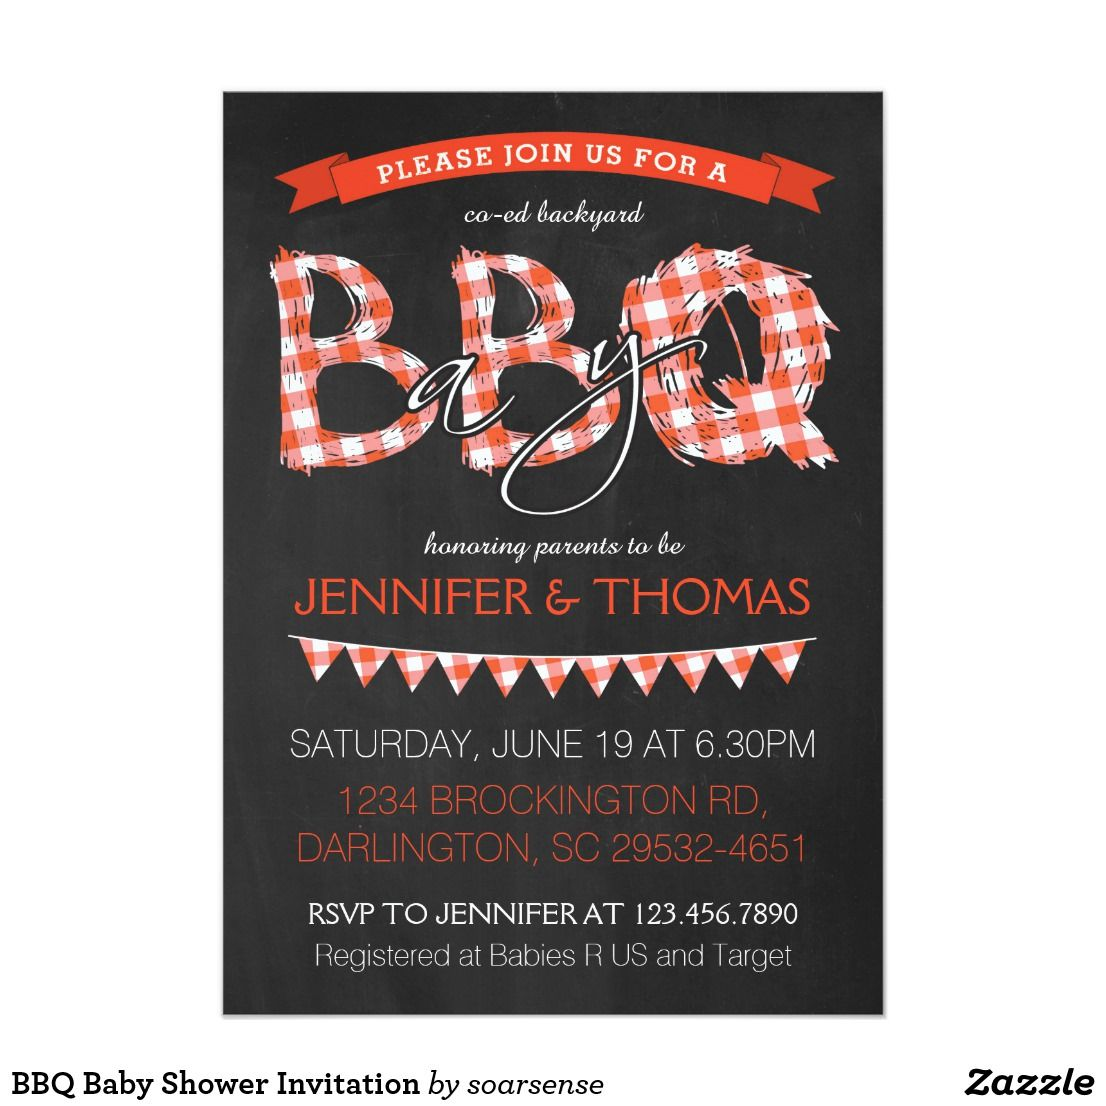 BBQ Baby Shower Invitation | Shower invitations